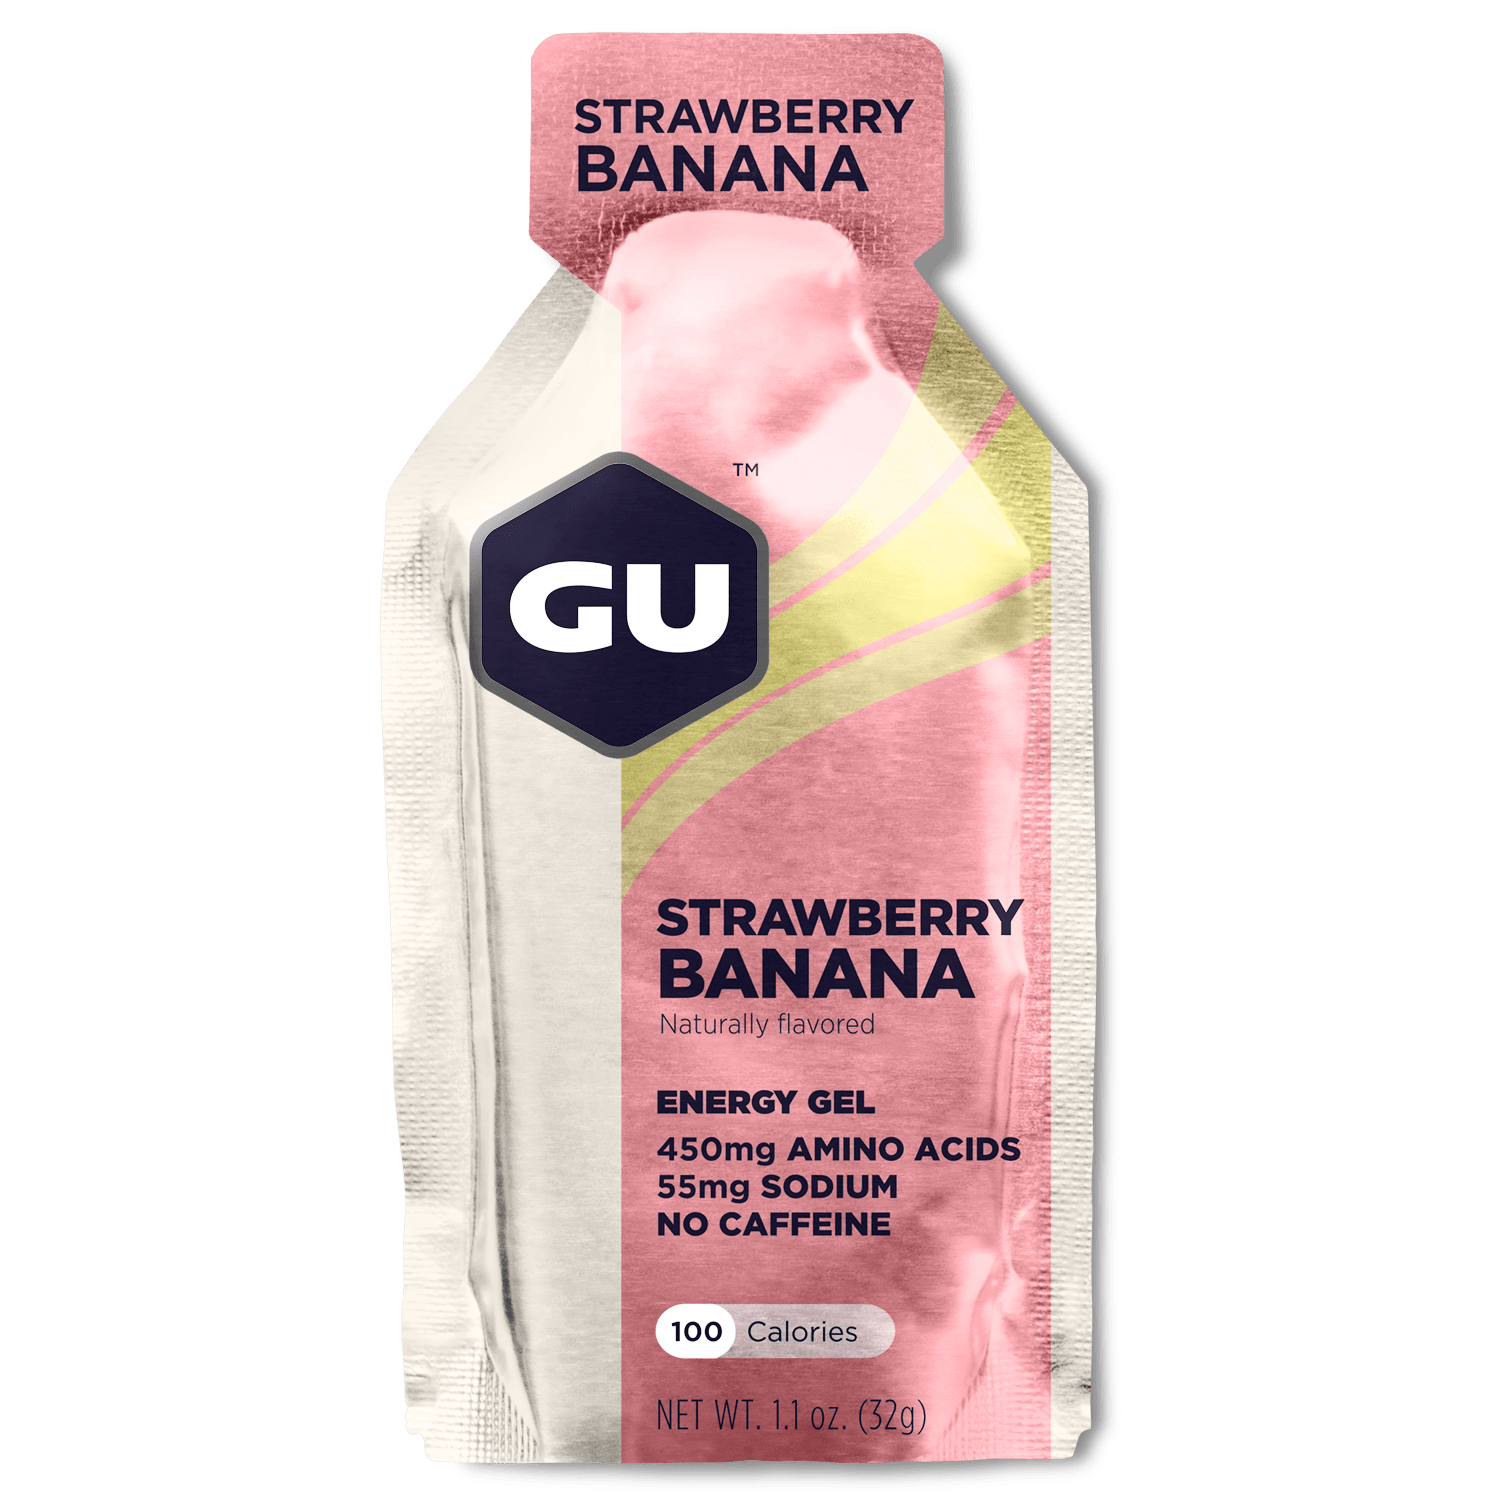 GU Sports Nutrition Strawberry Banana / 24 Count Box GU Original Sports Nutrition Energy Gel - Various Flavors